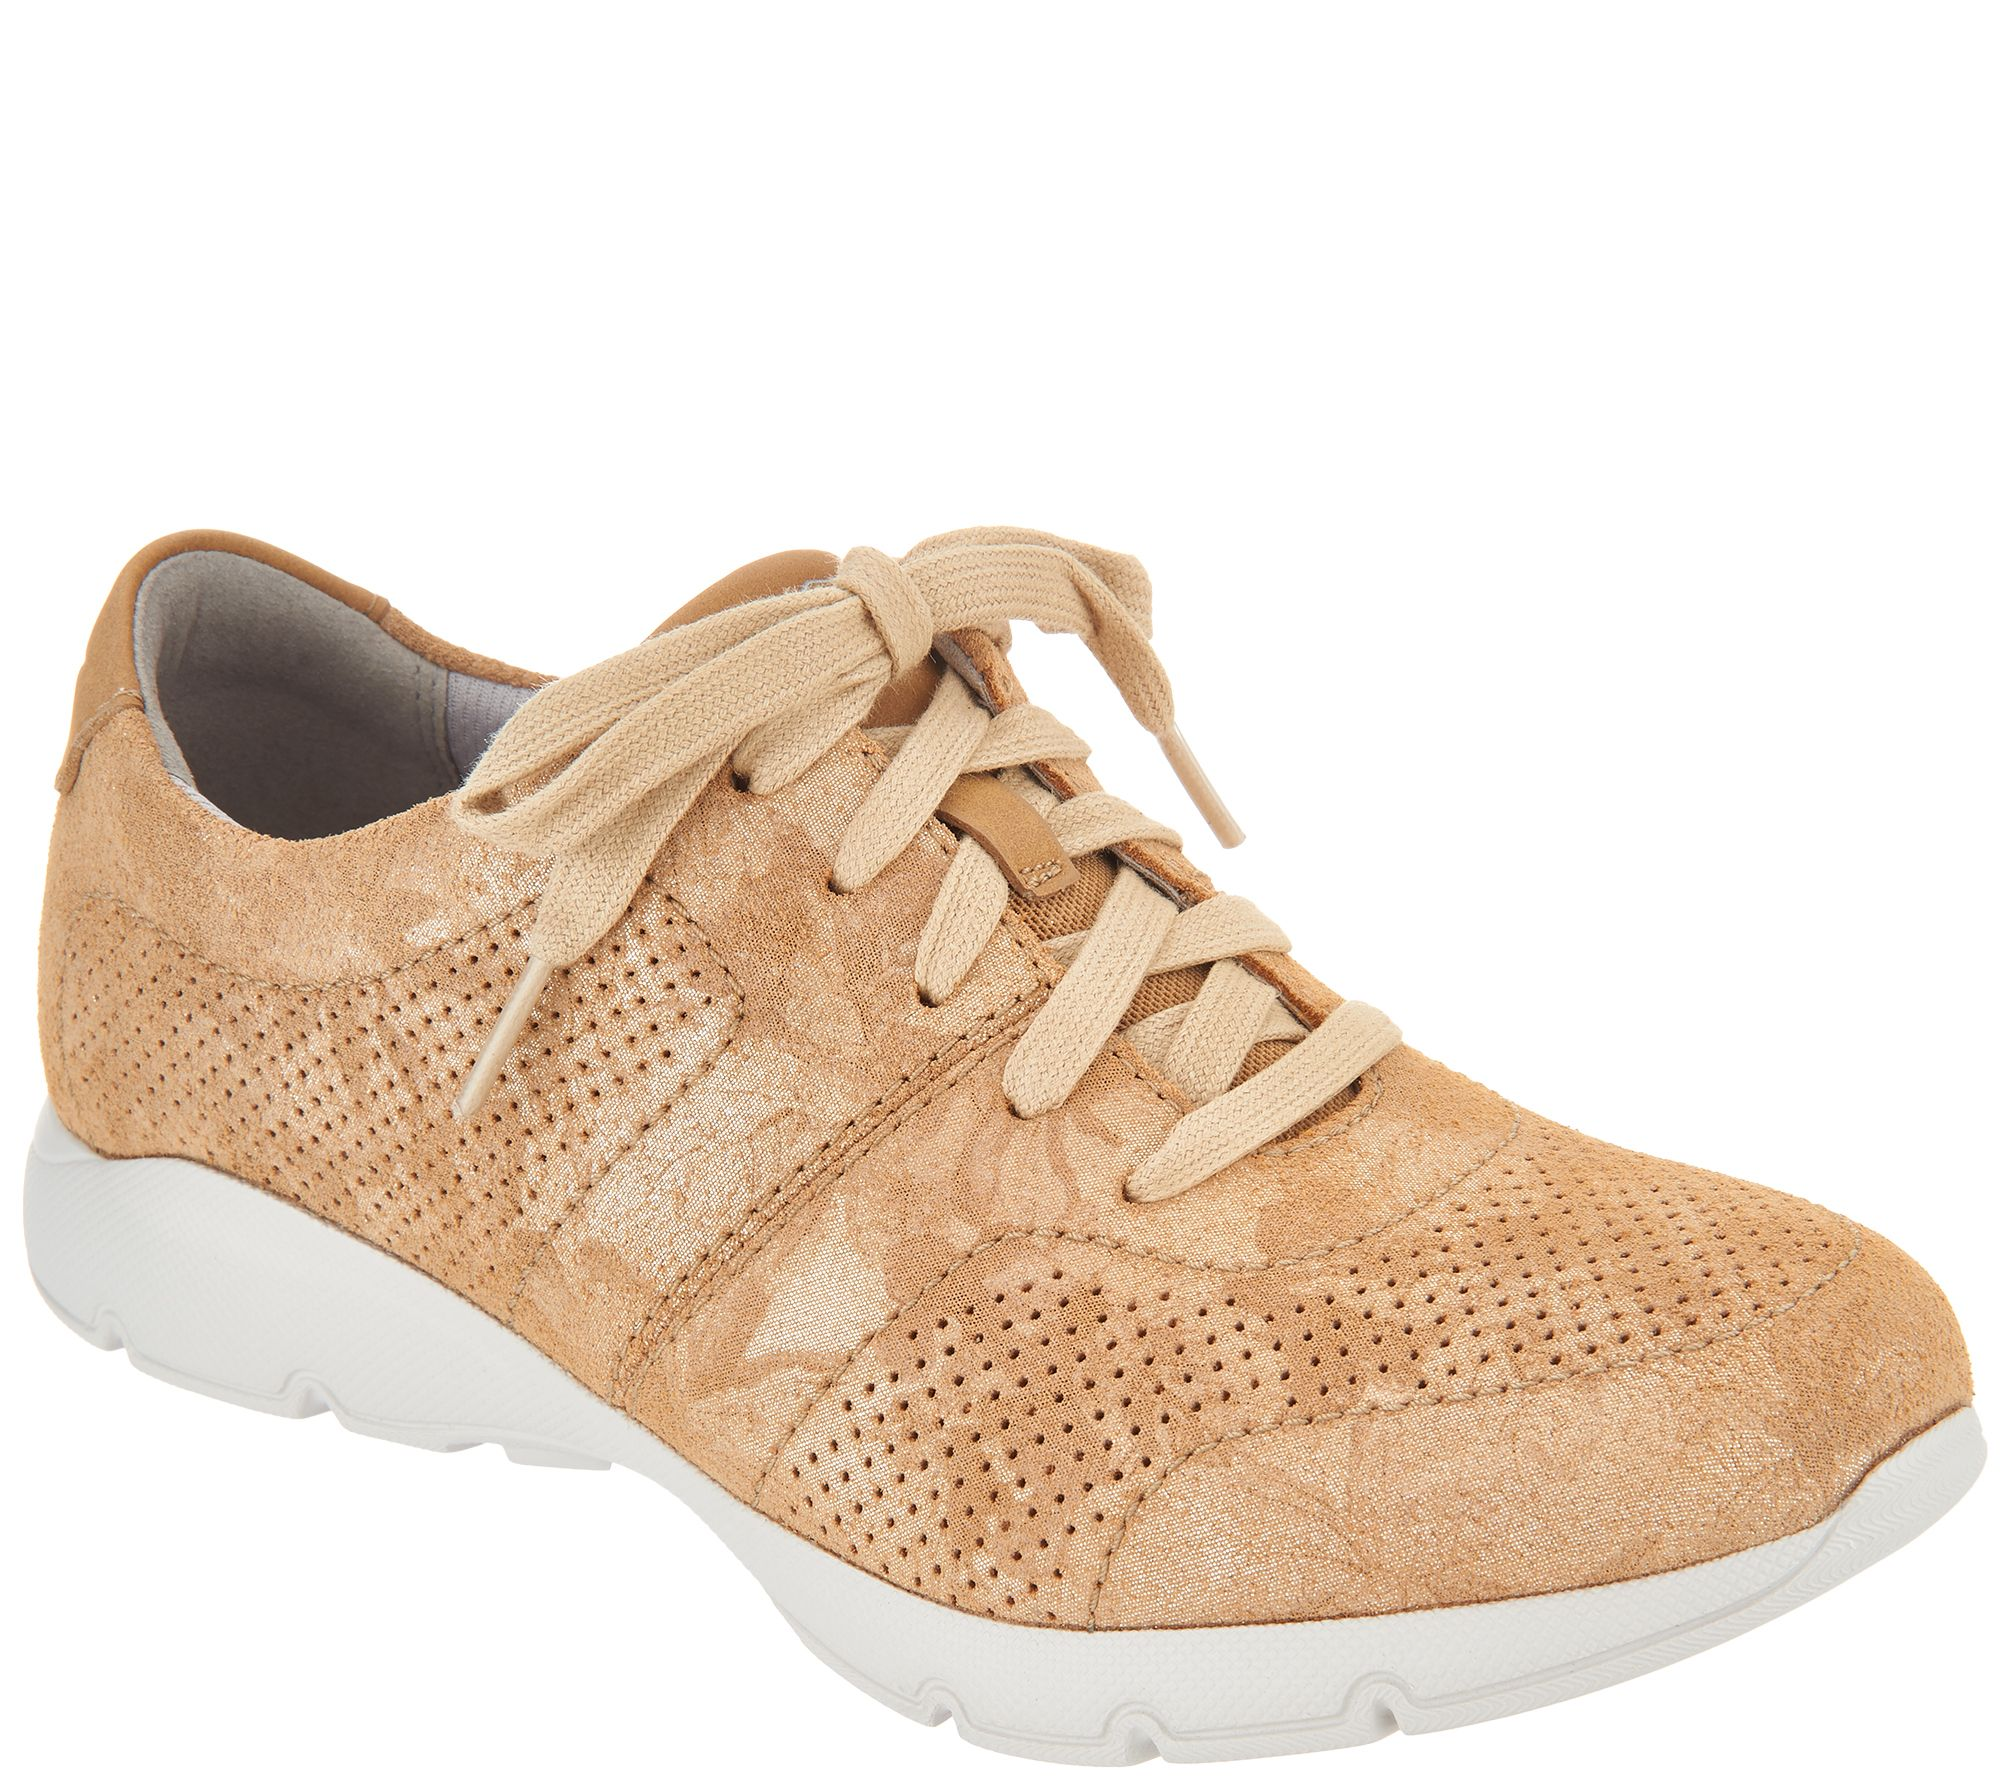 06643a853c91 Dansko Leather or Nubuck Lace-up Sneakers - Alissa - Page 1 — QVC.com